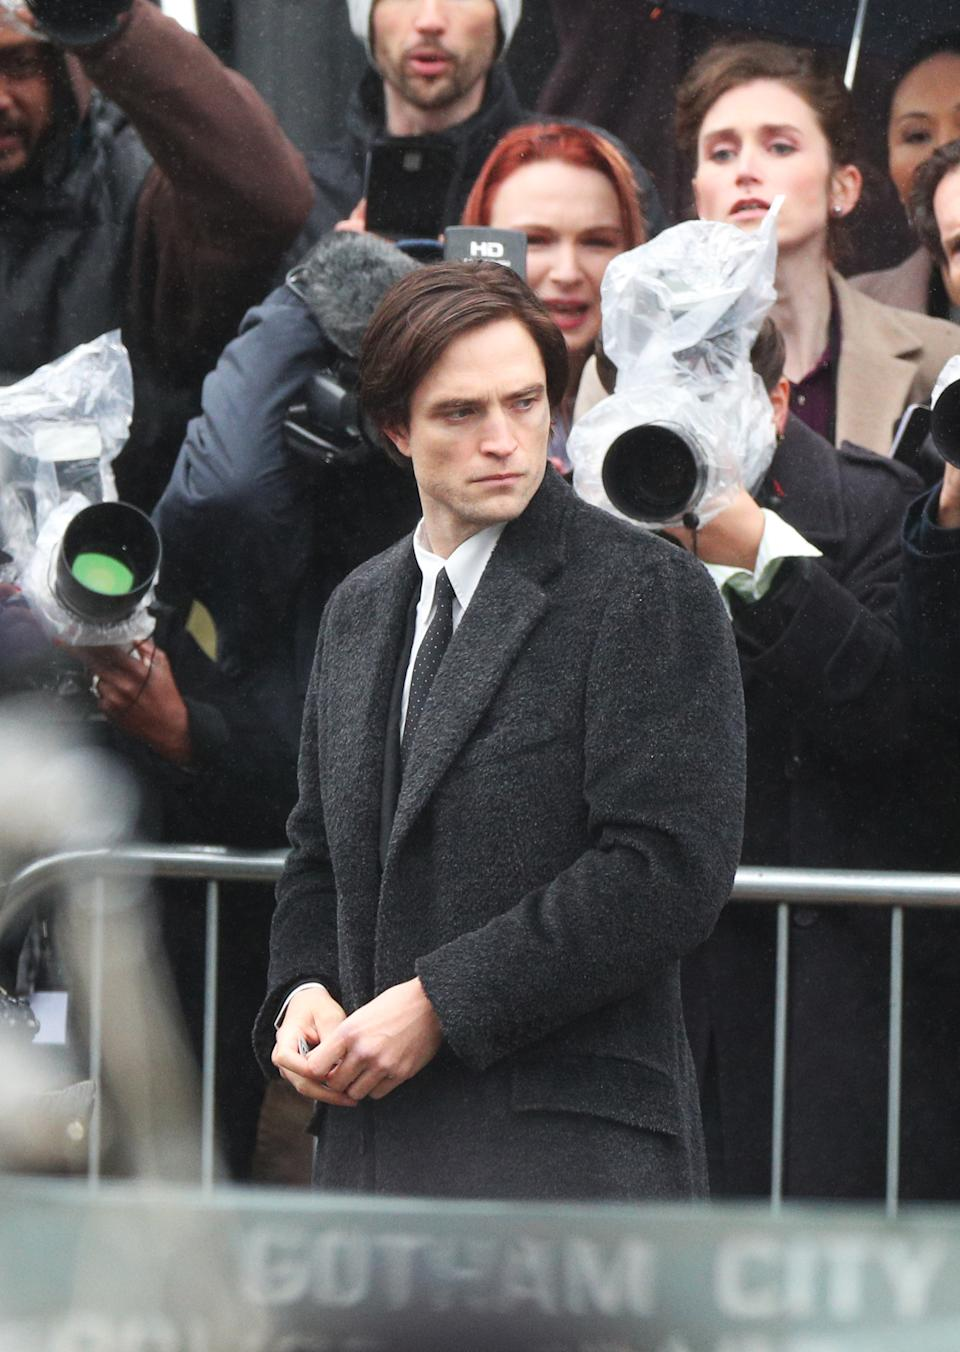 Robert Pattinson during filming of The Batman outside St George's Hall in Liverpool. (Photo by Peter Byrne/PA Images via Getty Images)